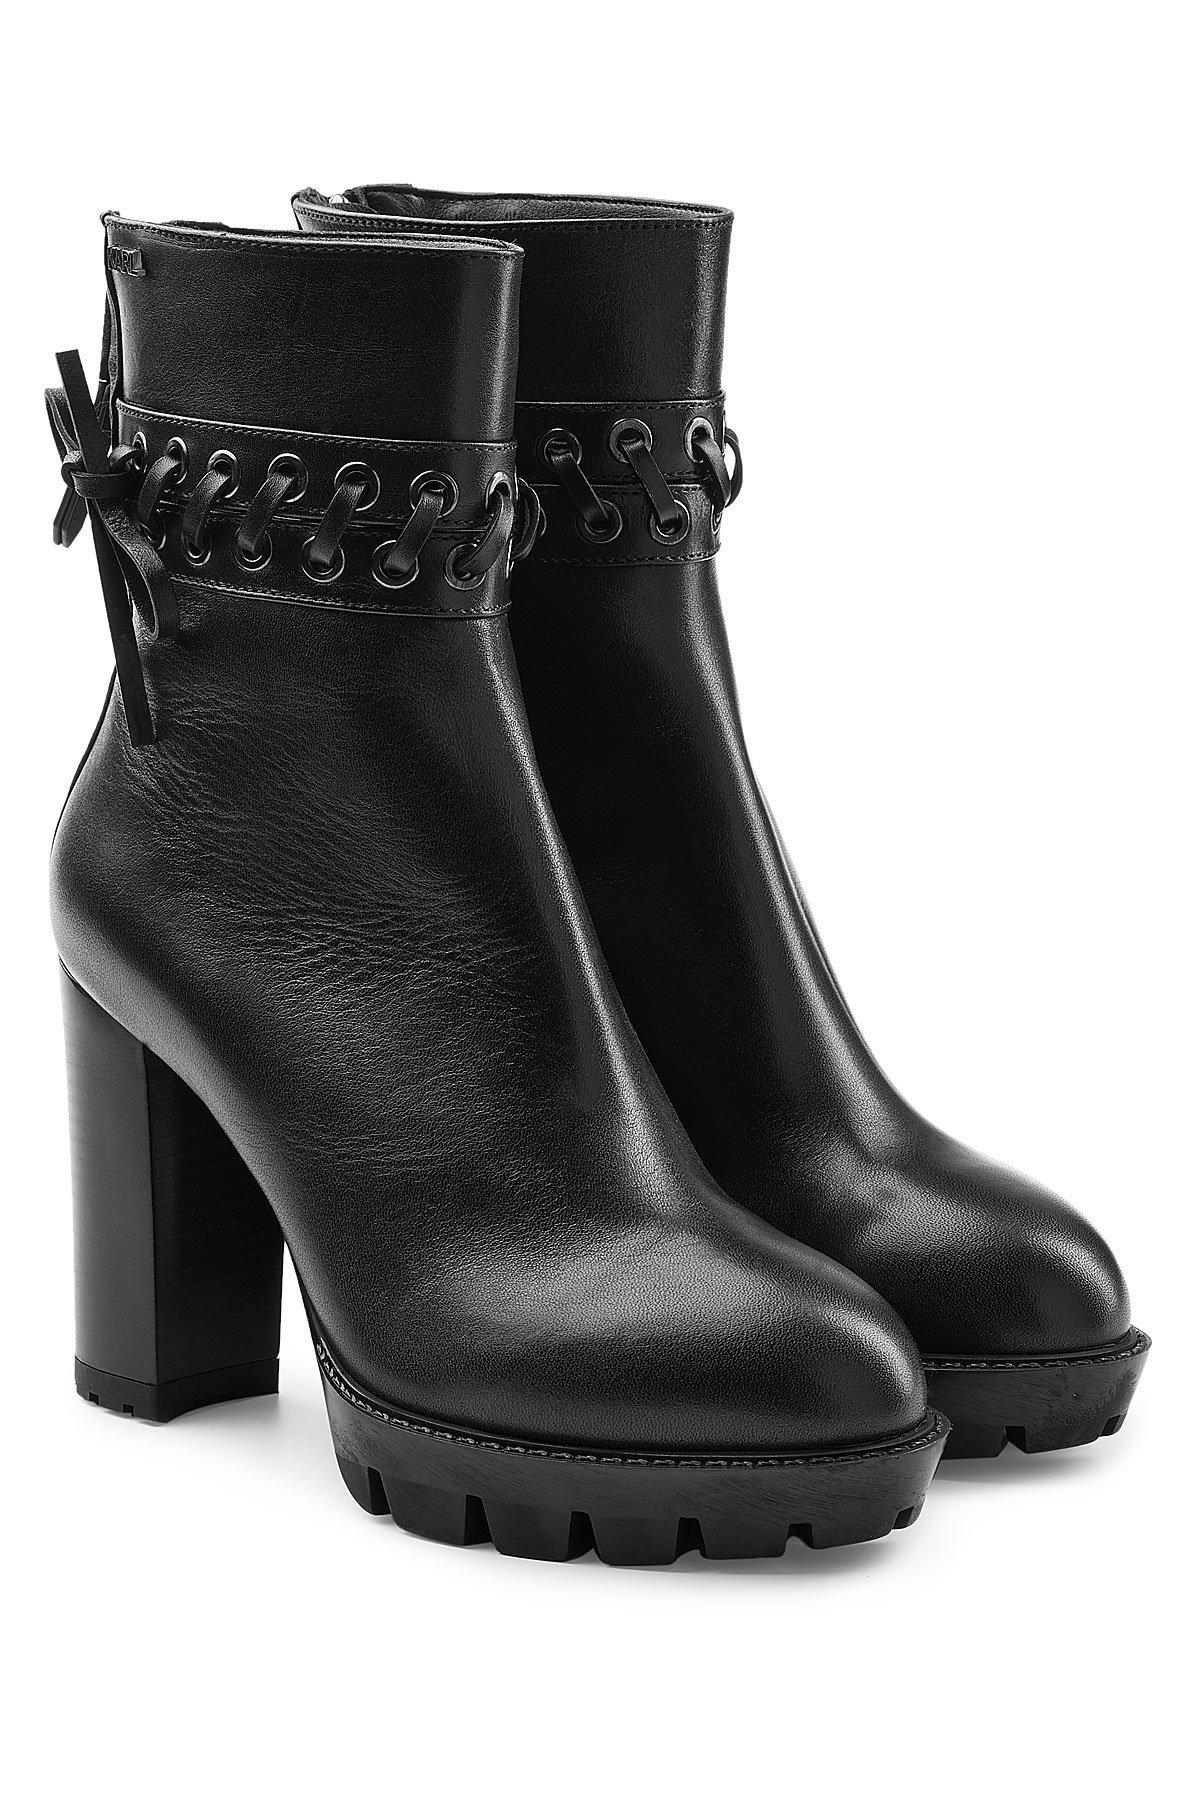 Karl Lagerfeld Leather Ankle Boots With Gripped Platform In Black